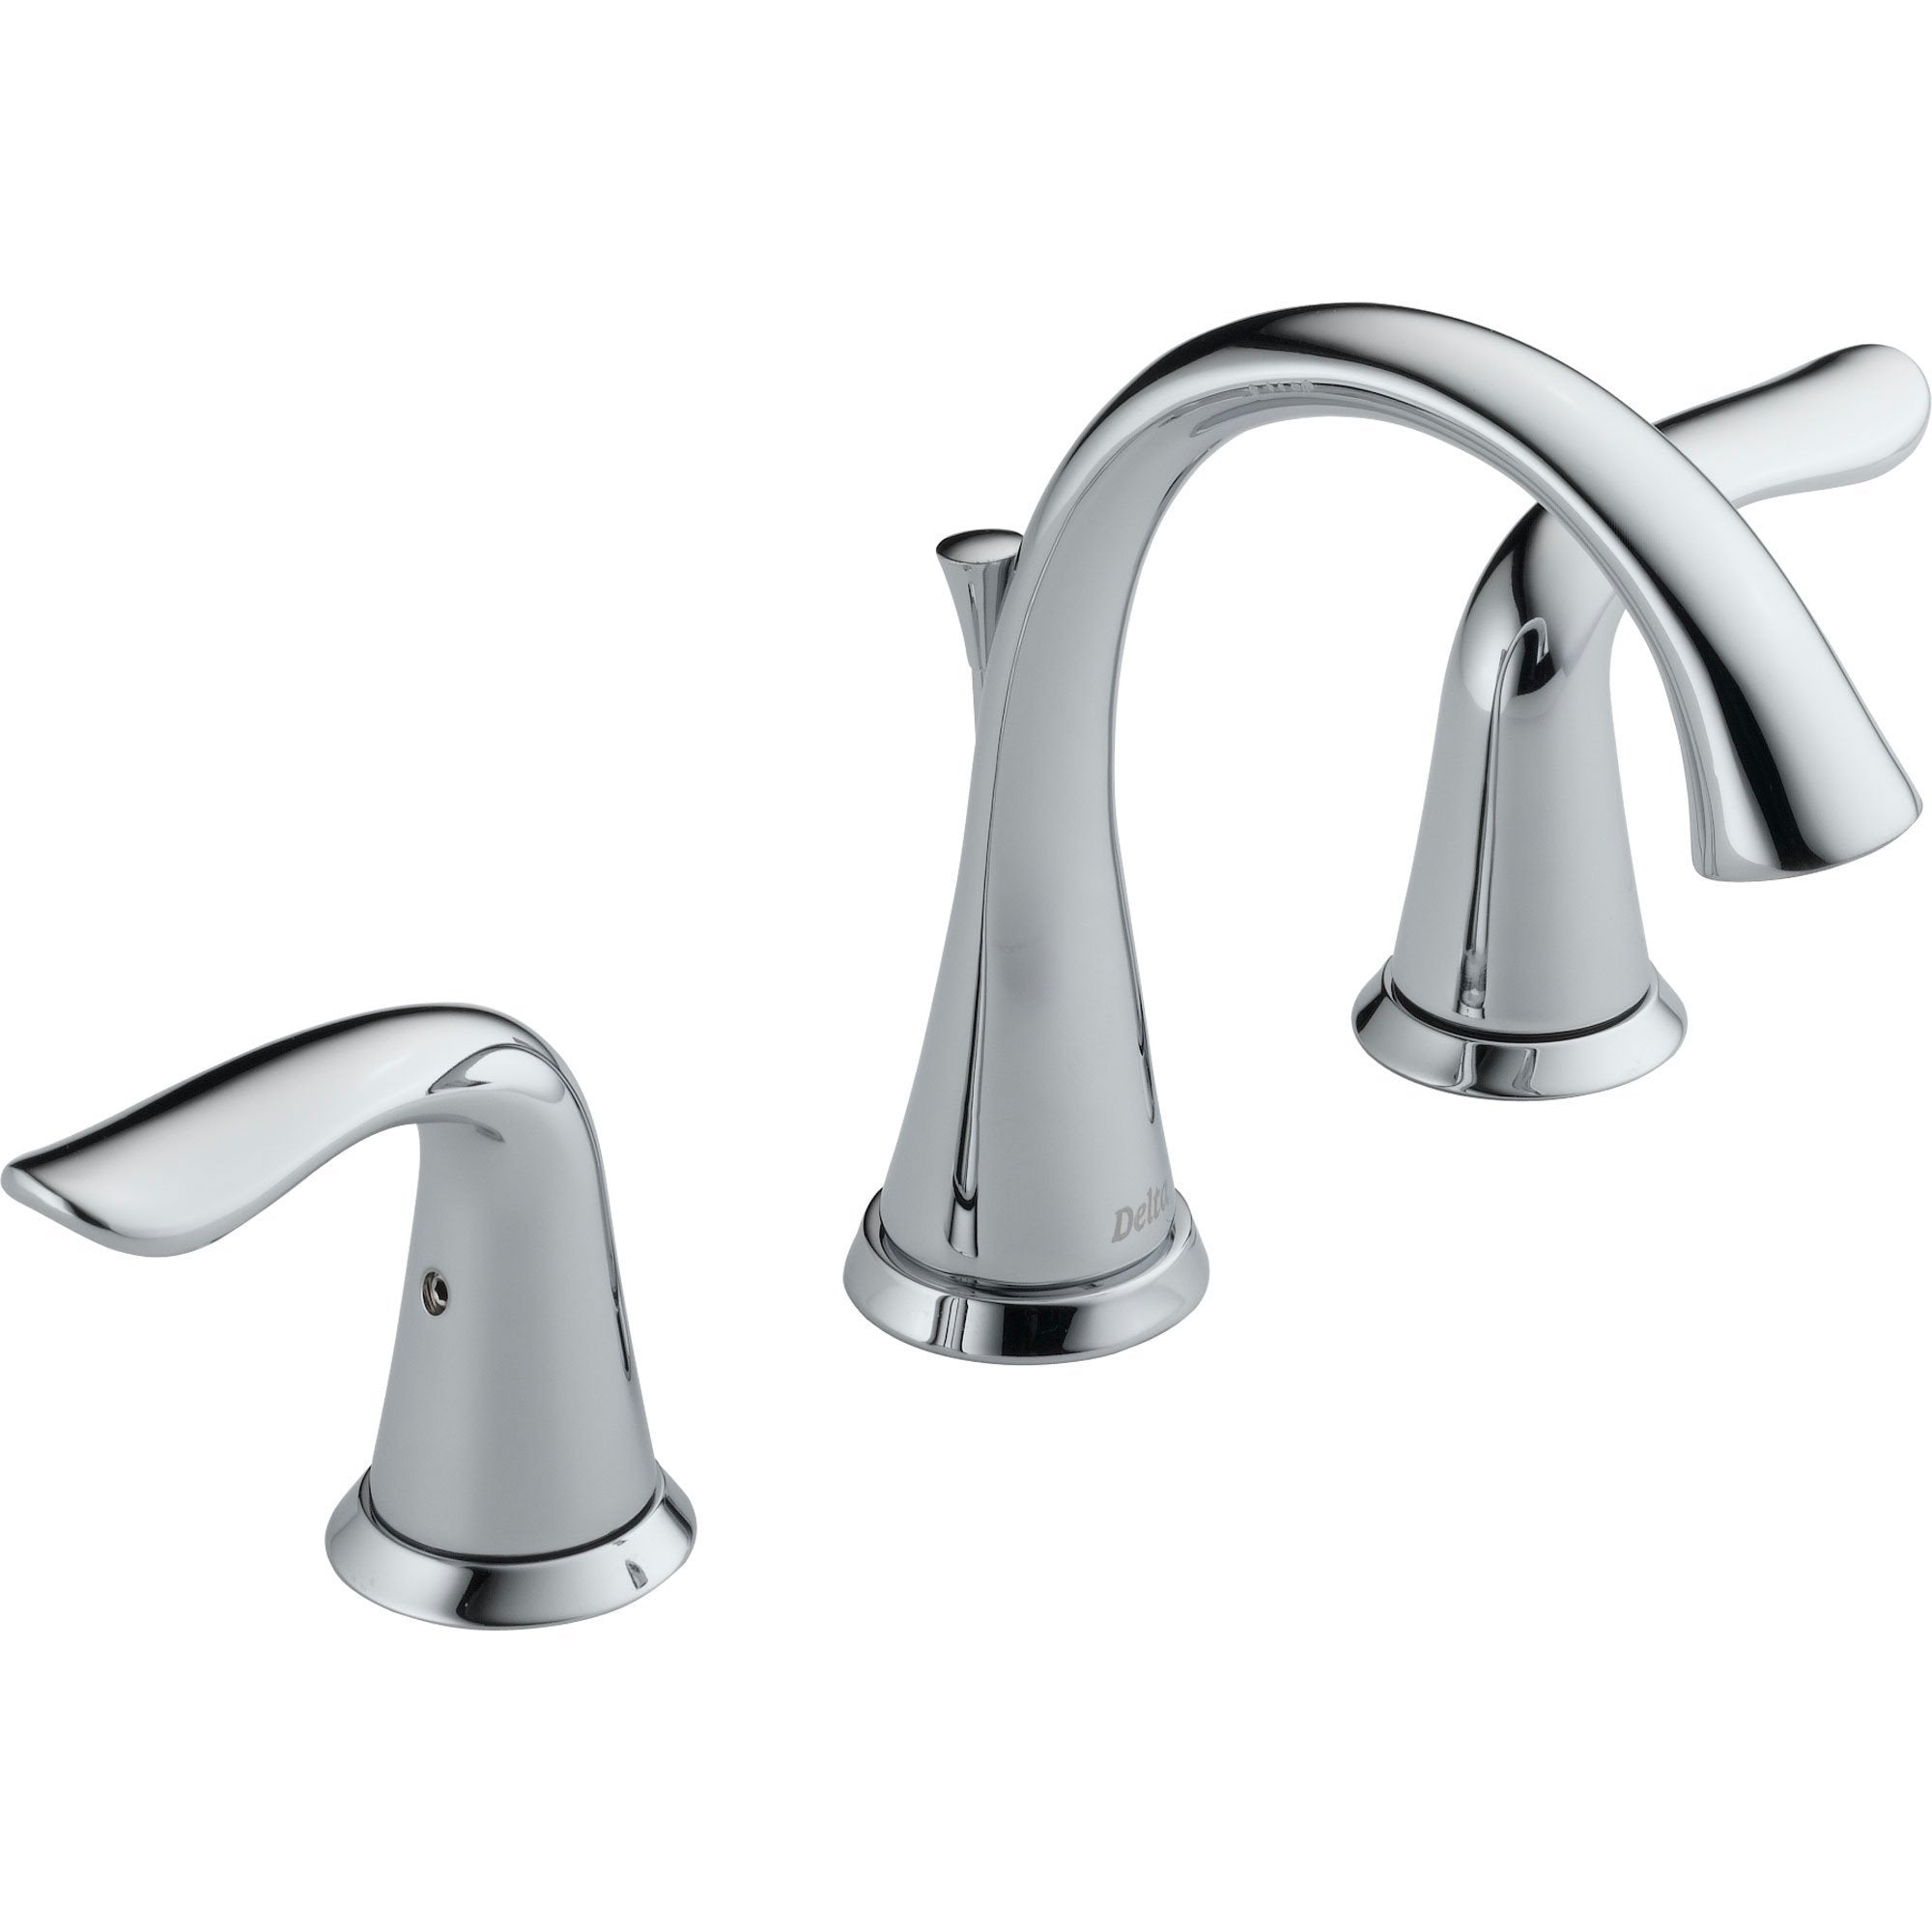 "Delta Lahara 8"" Widespread 2-Handle High Arc Bathroom Faucet in Chrome 474223"